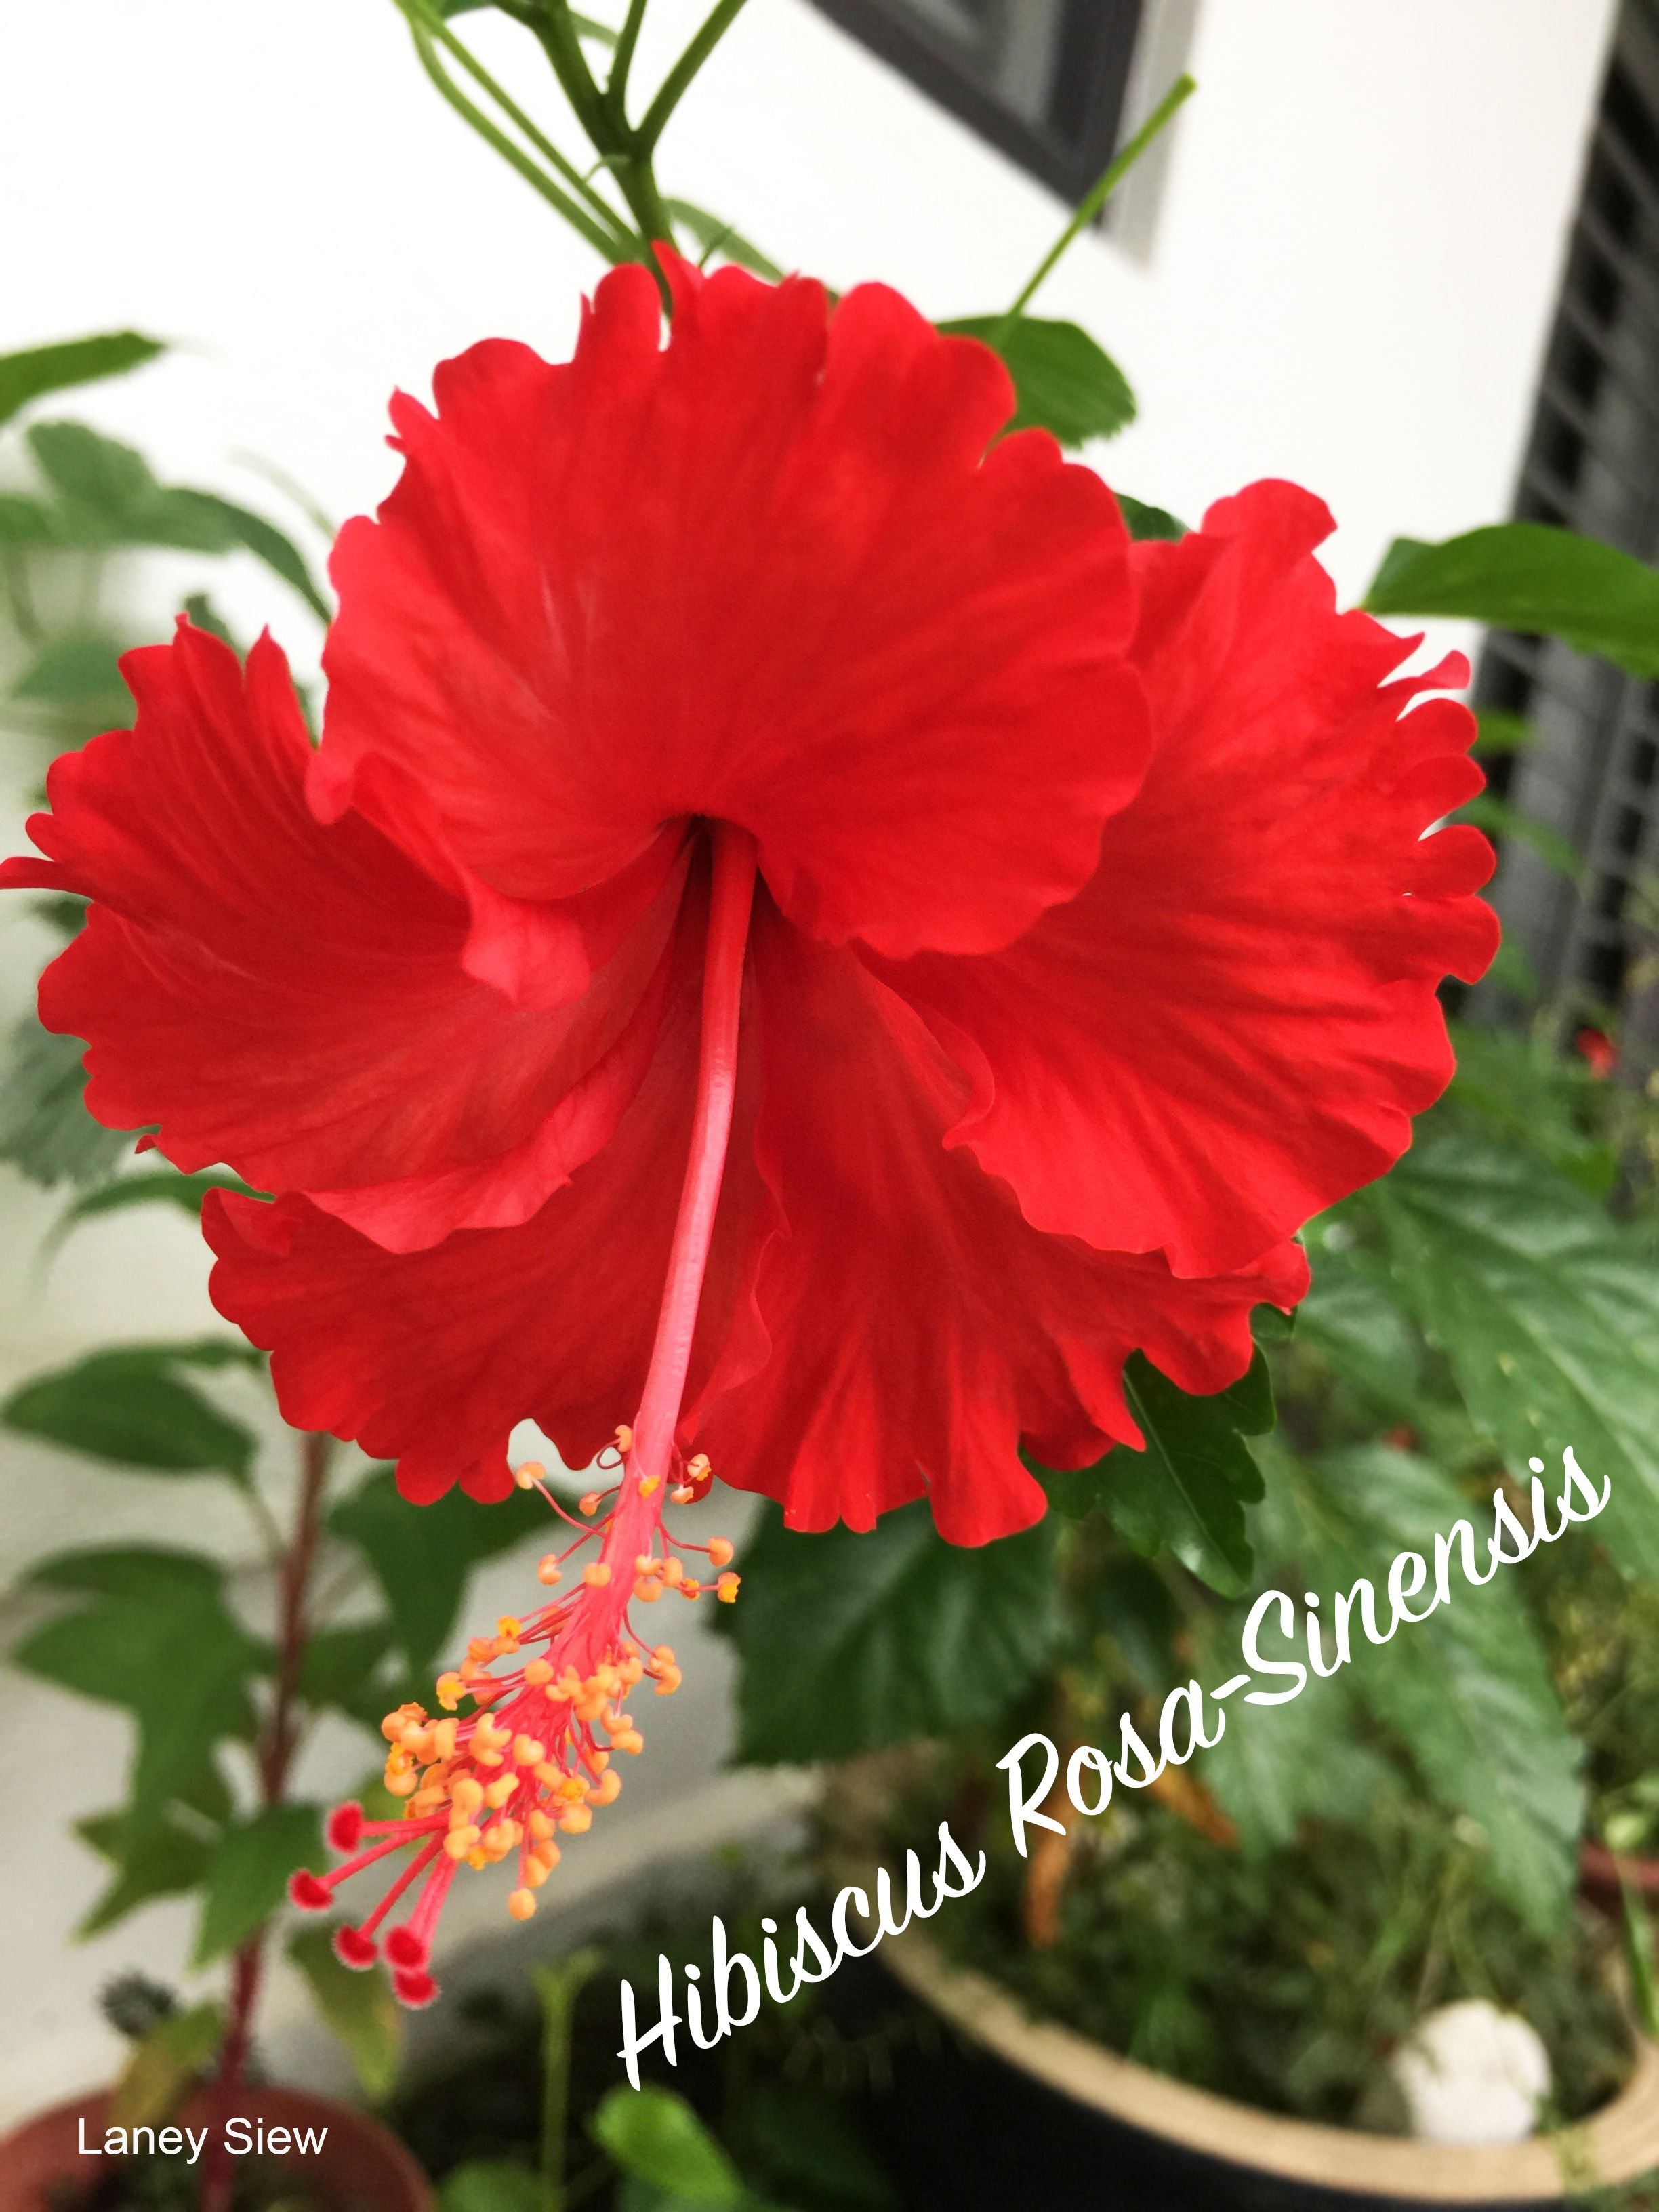 Hibiscus Rosa Sinensis Blooming National Flower In My Garden By